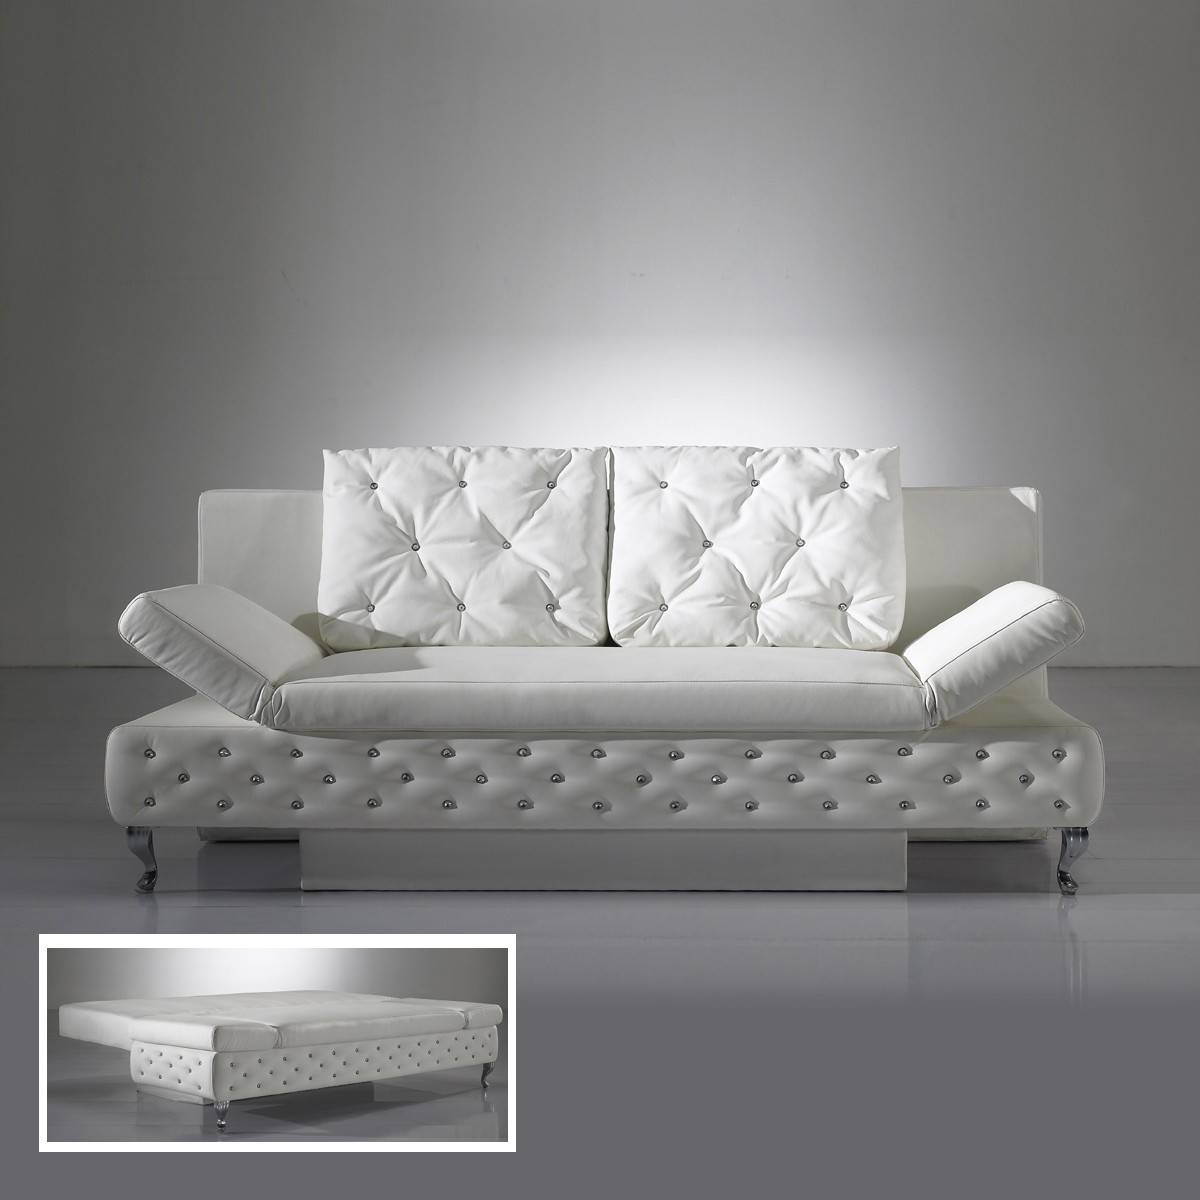 schlafcouch schlafsofa sofa rokkoko in wei 201cm breit ebay. Black Bedroom Furniture Sets. Home Design Ideas